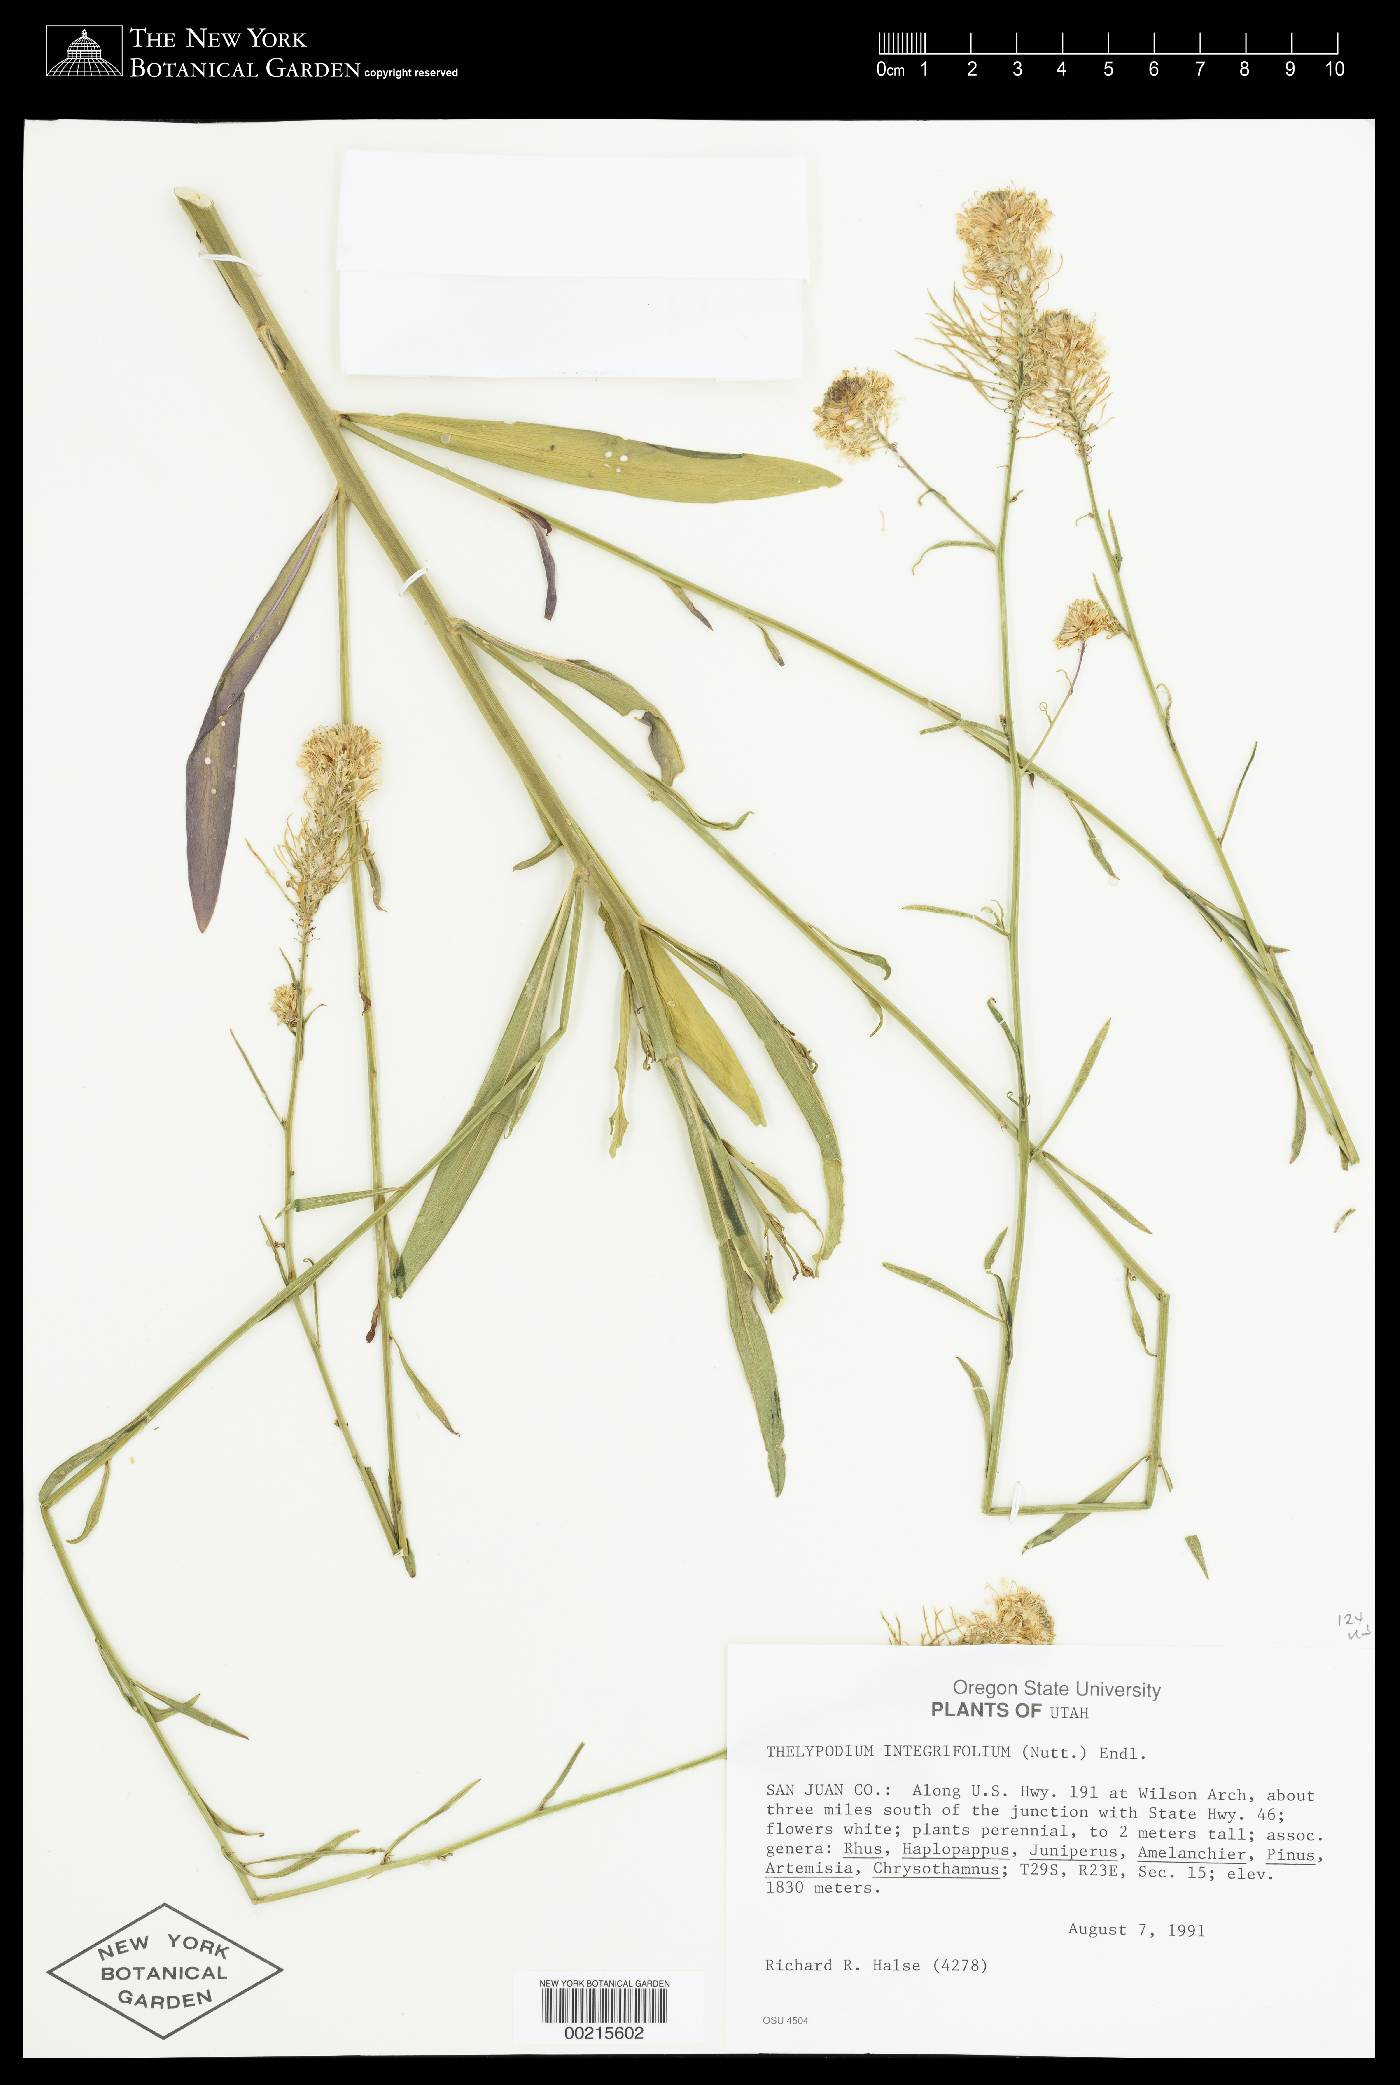 Thelypodium integrifolium subsp. gracilipes image